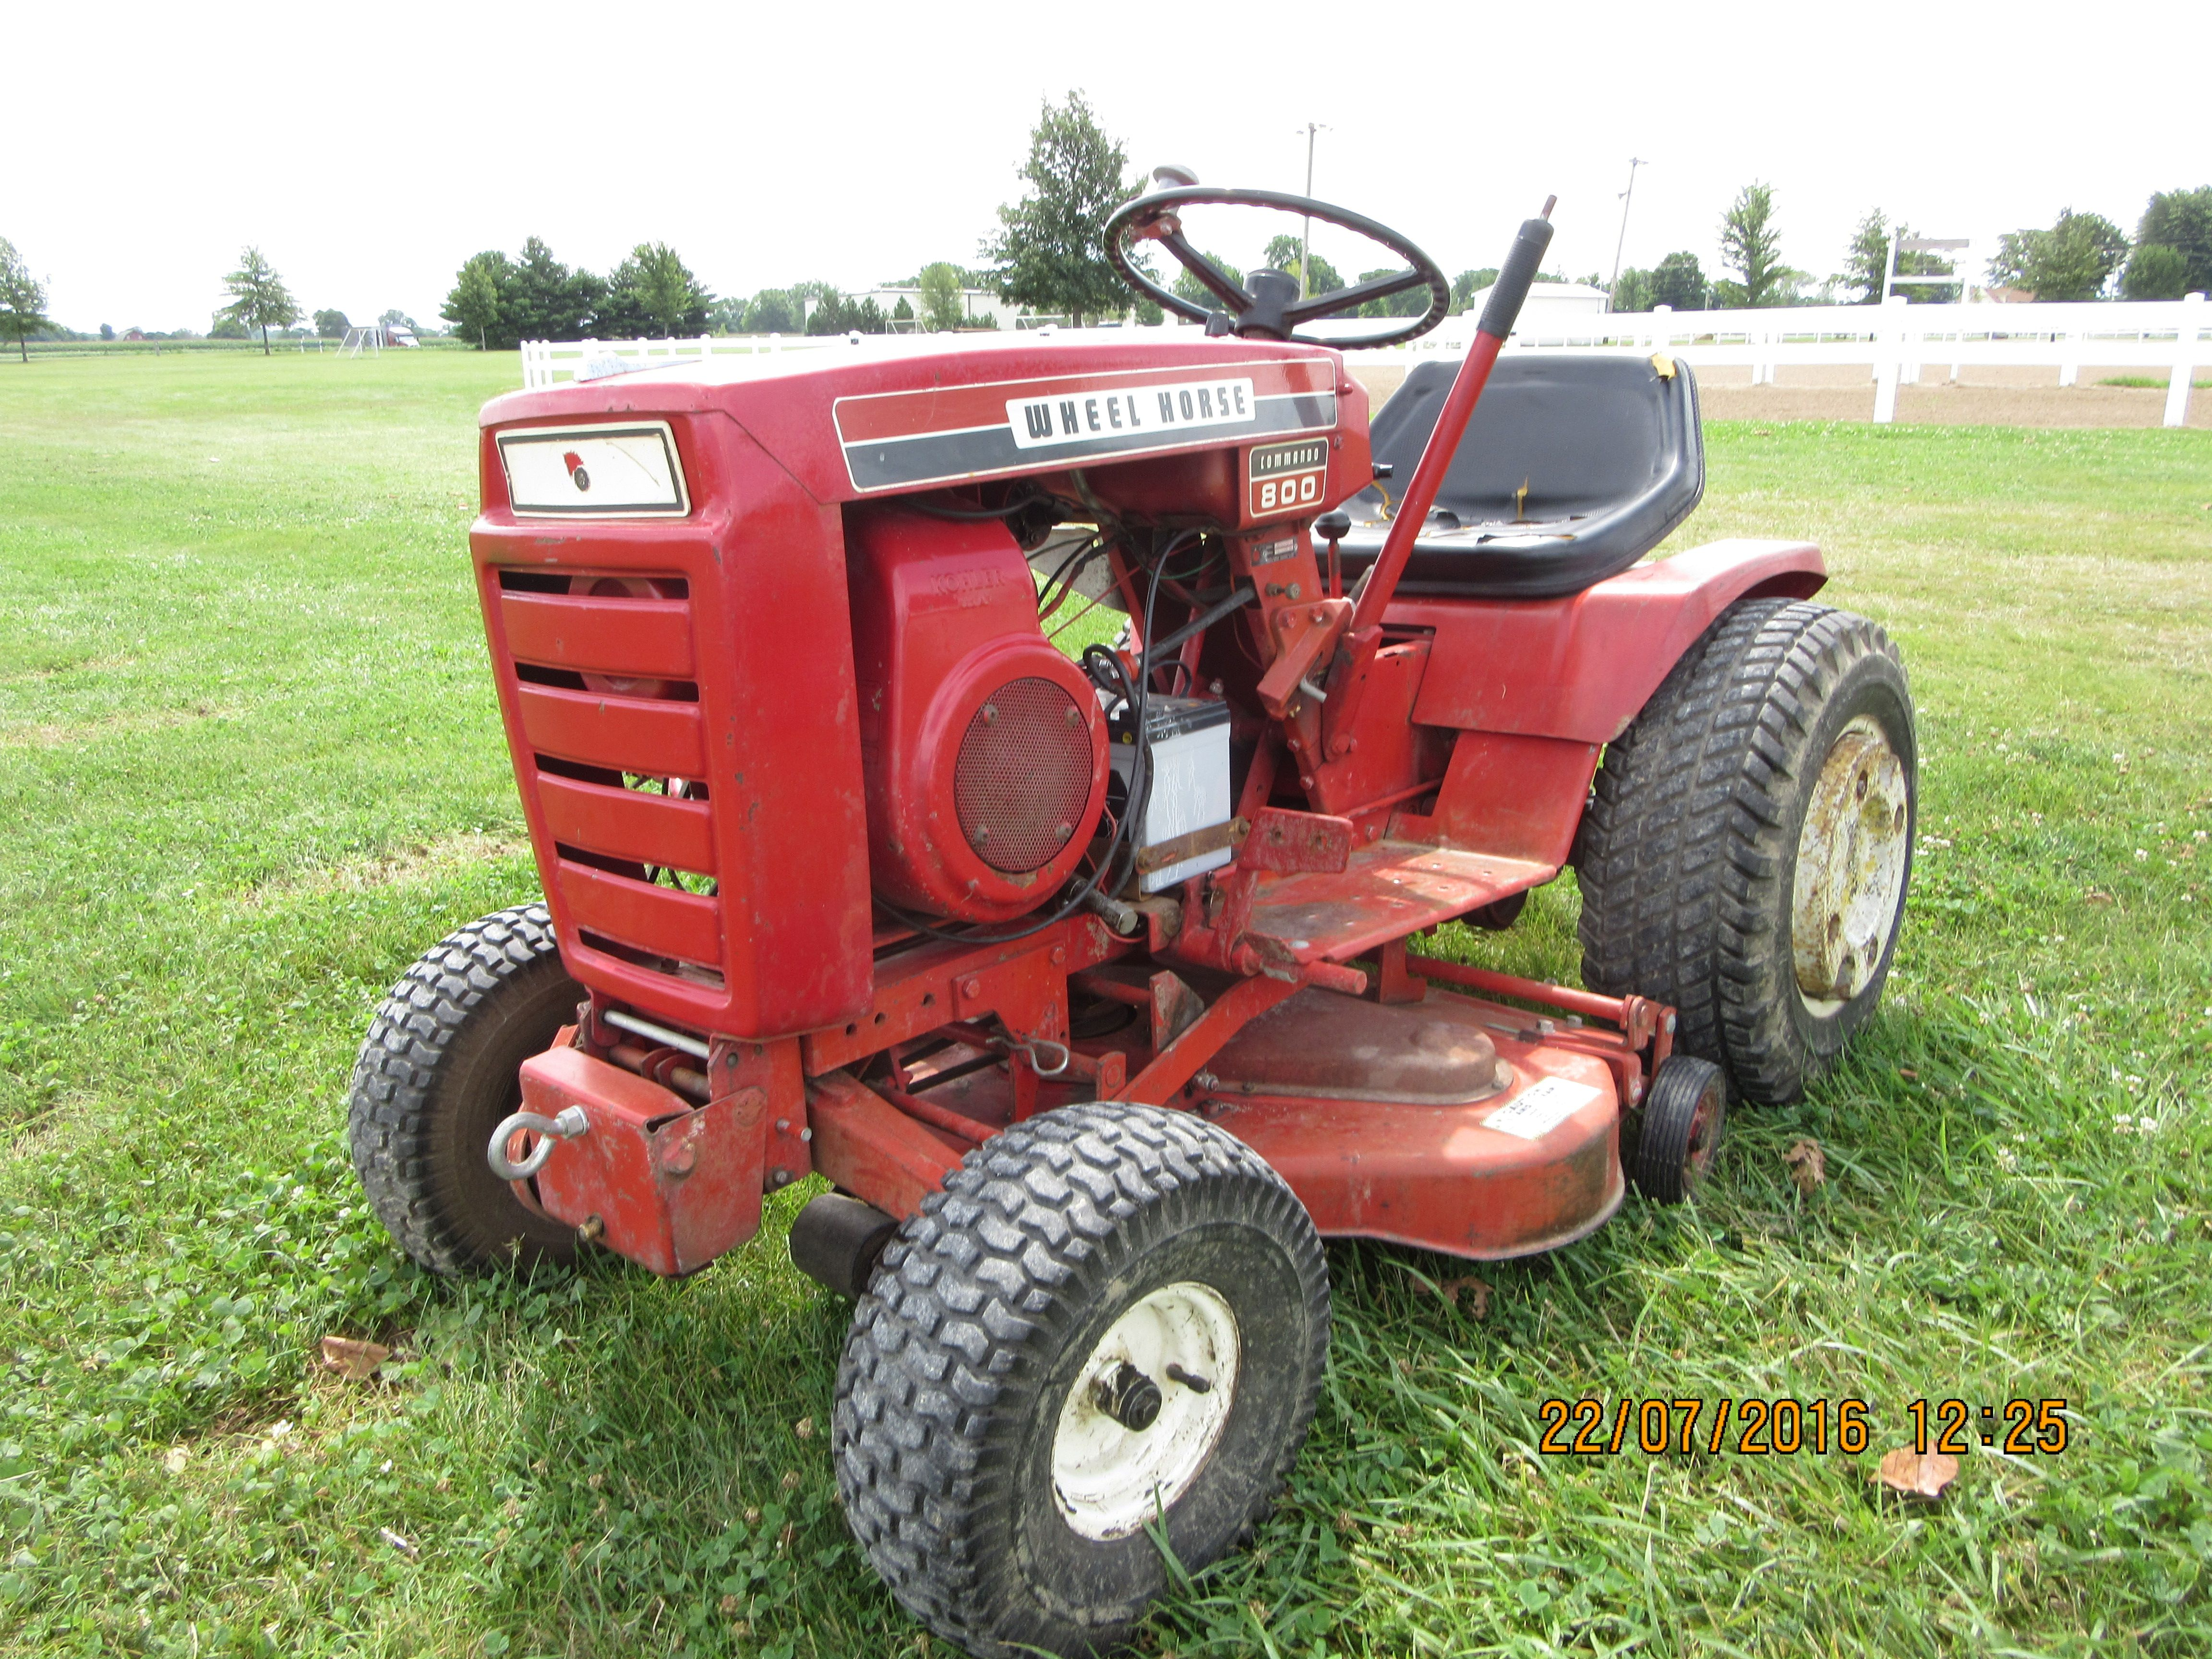 Wheel Horse Command 800 Mower Tractor Wheel Horse Tractor Tractors Riding Lawn Mowers